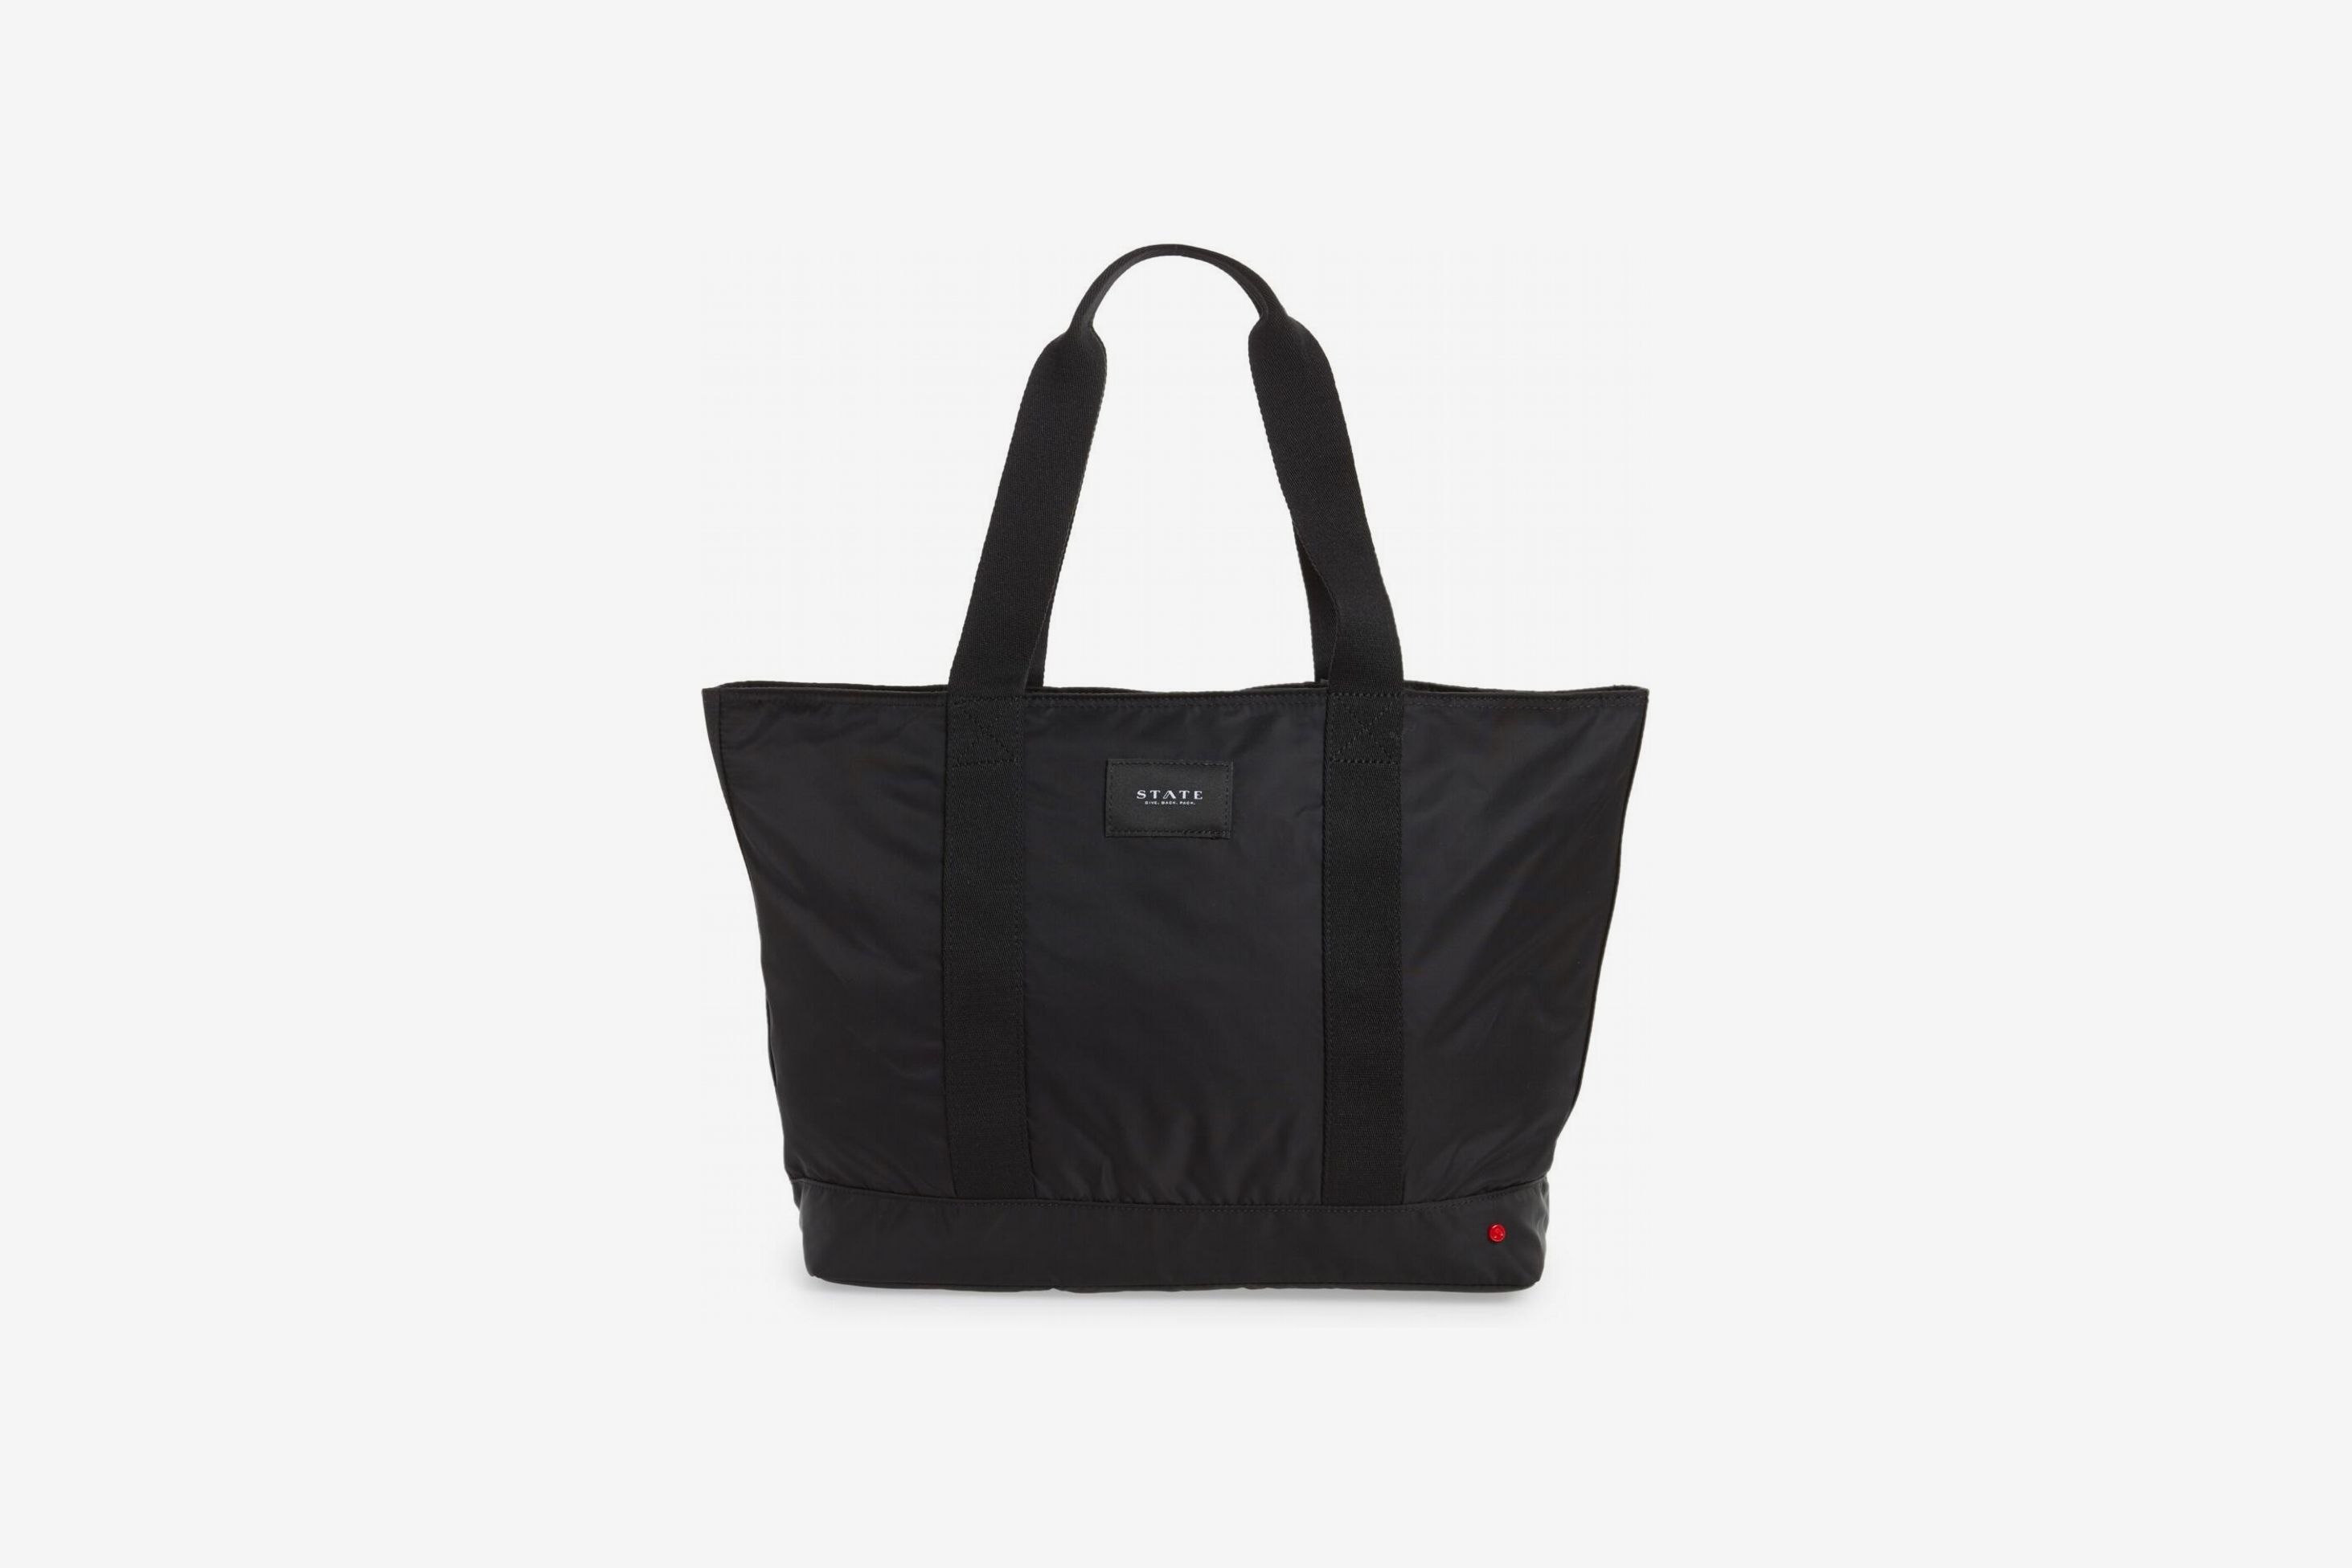 State Bags the Heights Nylon Tote